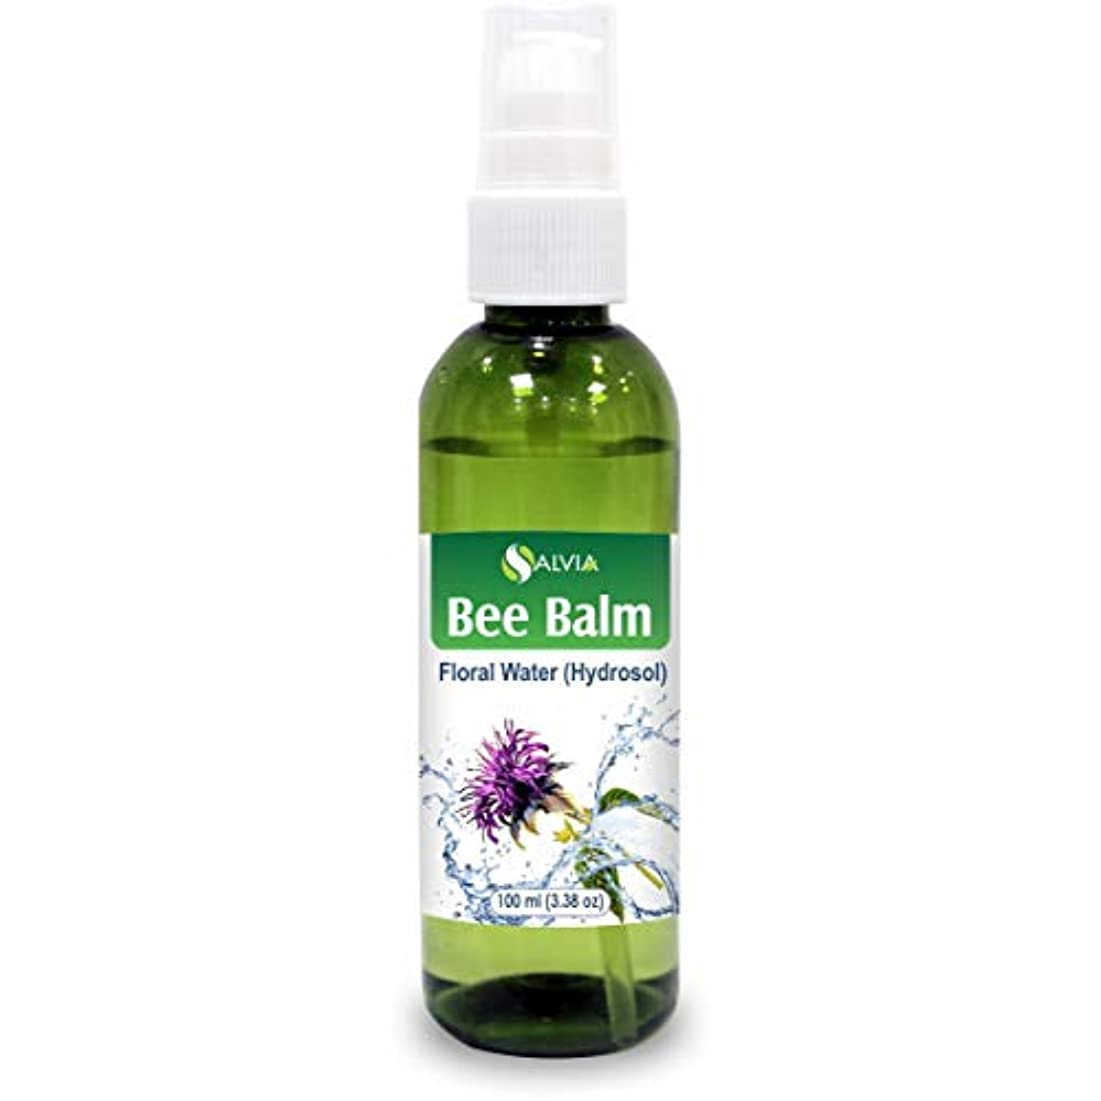 顕著パイプキャンベラBee Balm Floral Water 100ml (Hydrosol) 100% Pure And Natural